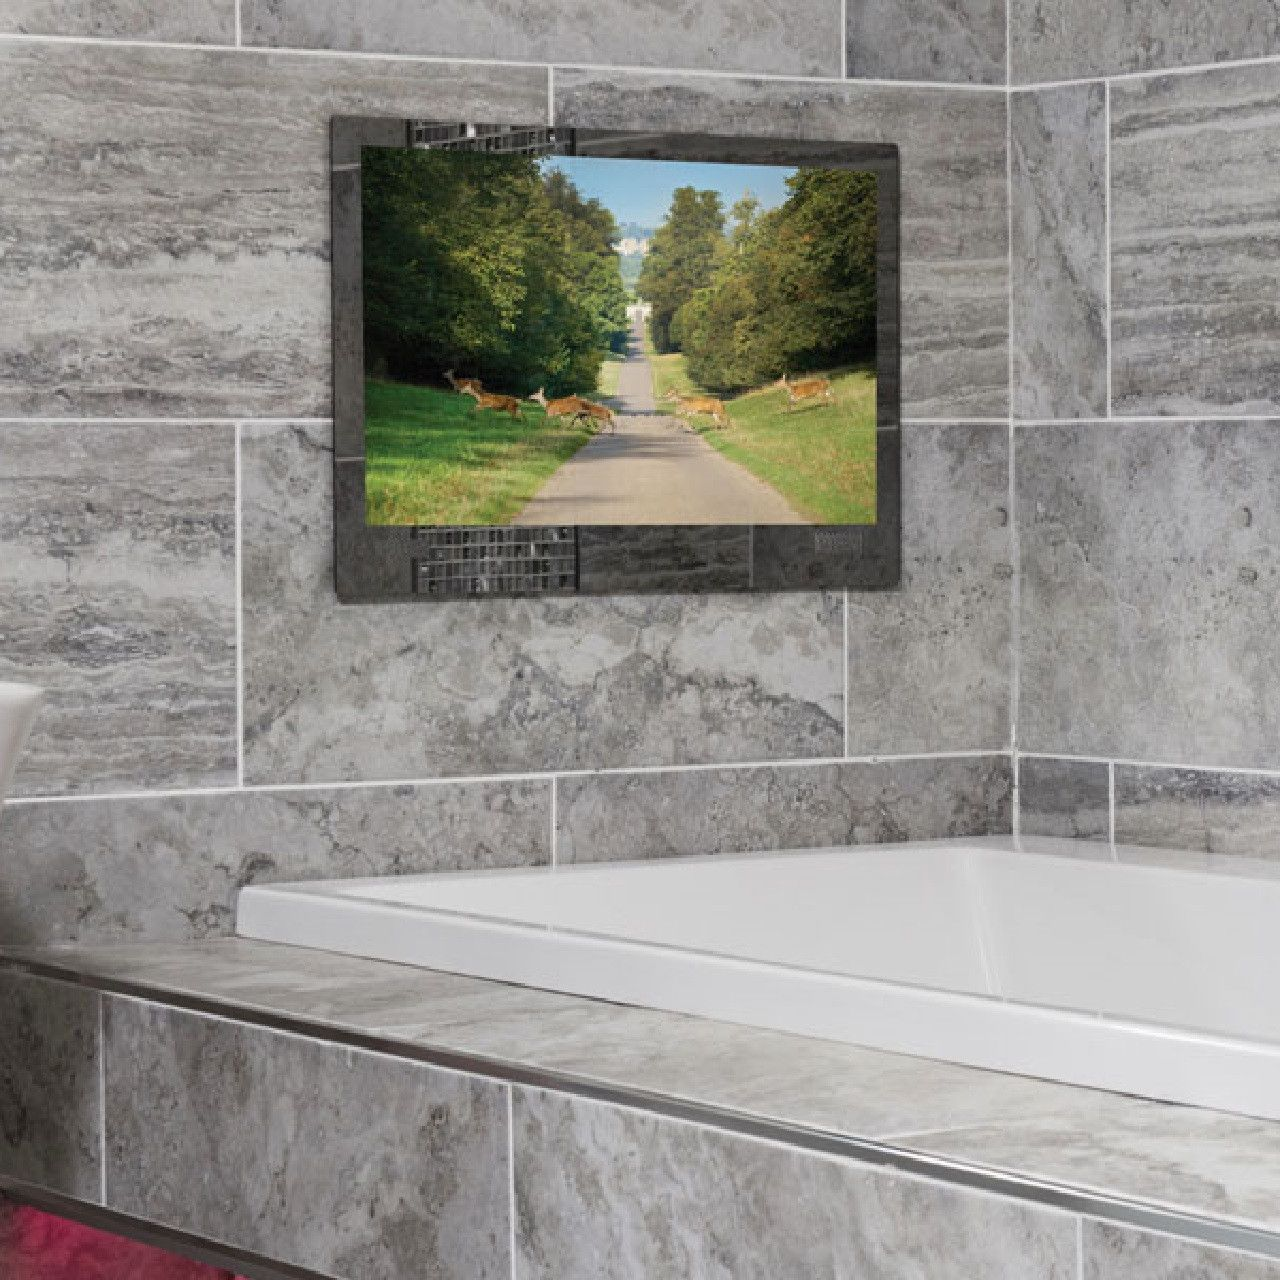 Add A Touch Of Luxury To Your Bathroom With A Bathroom Tv Fully Waterproof And Mist Free Our Bathroom Tvs Tv In Bathroom Bathroom Technology Dream Bathrooms